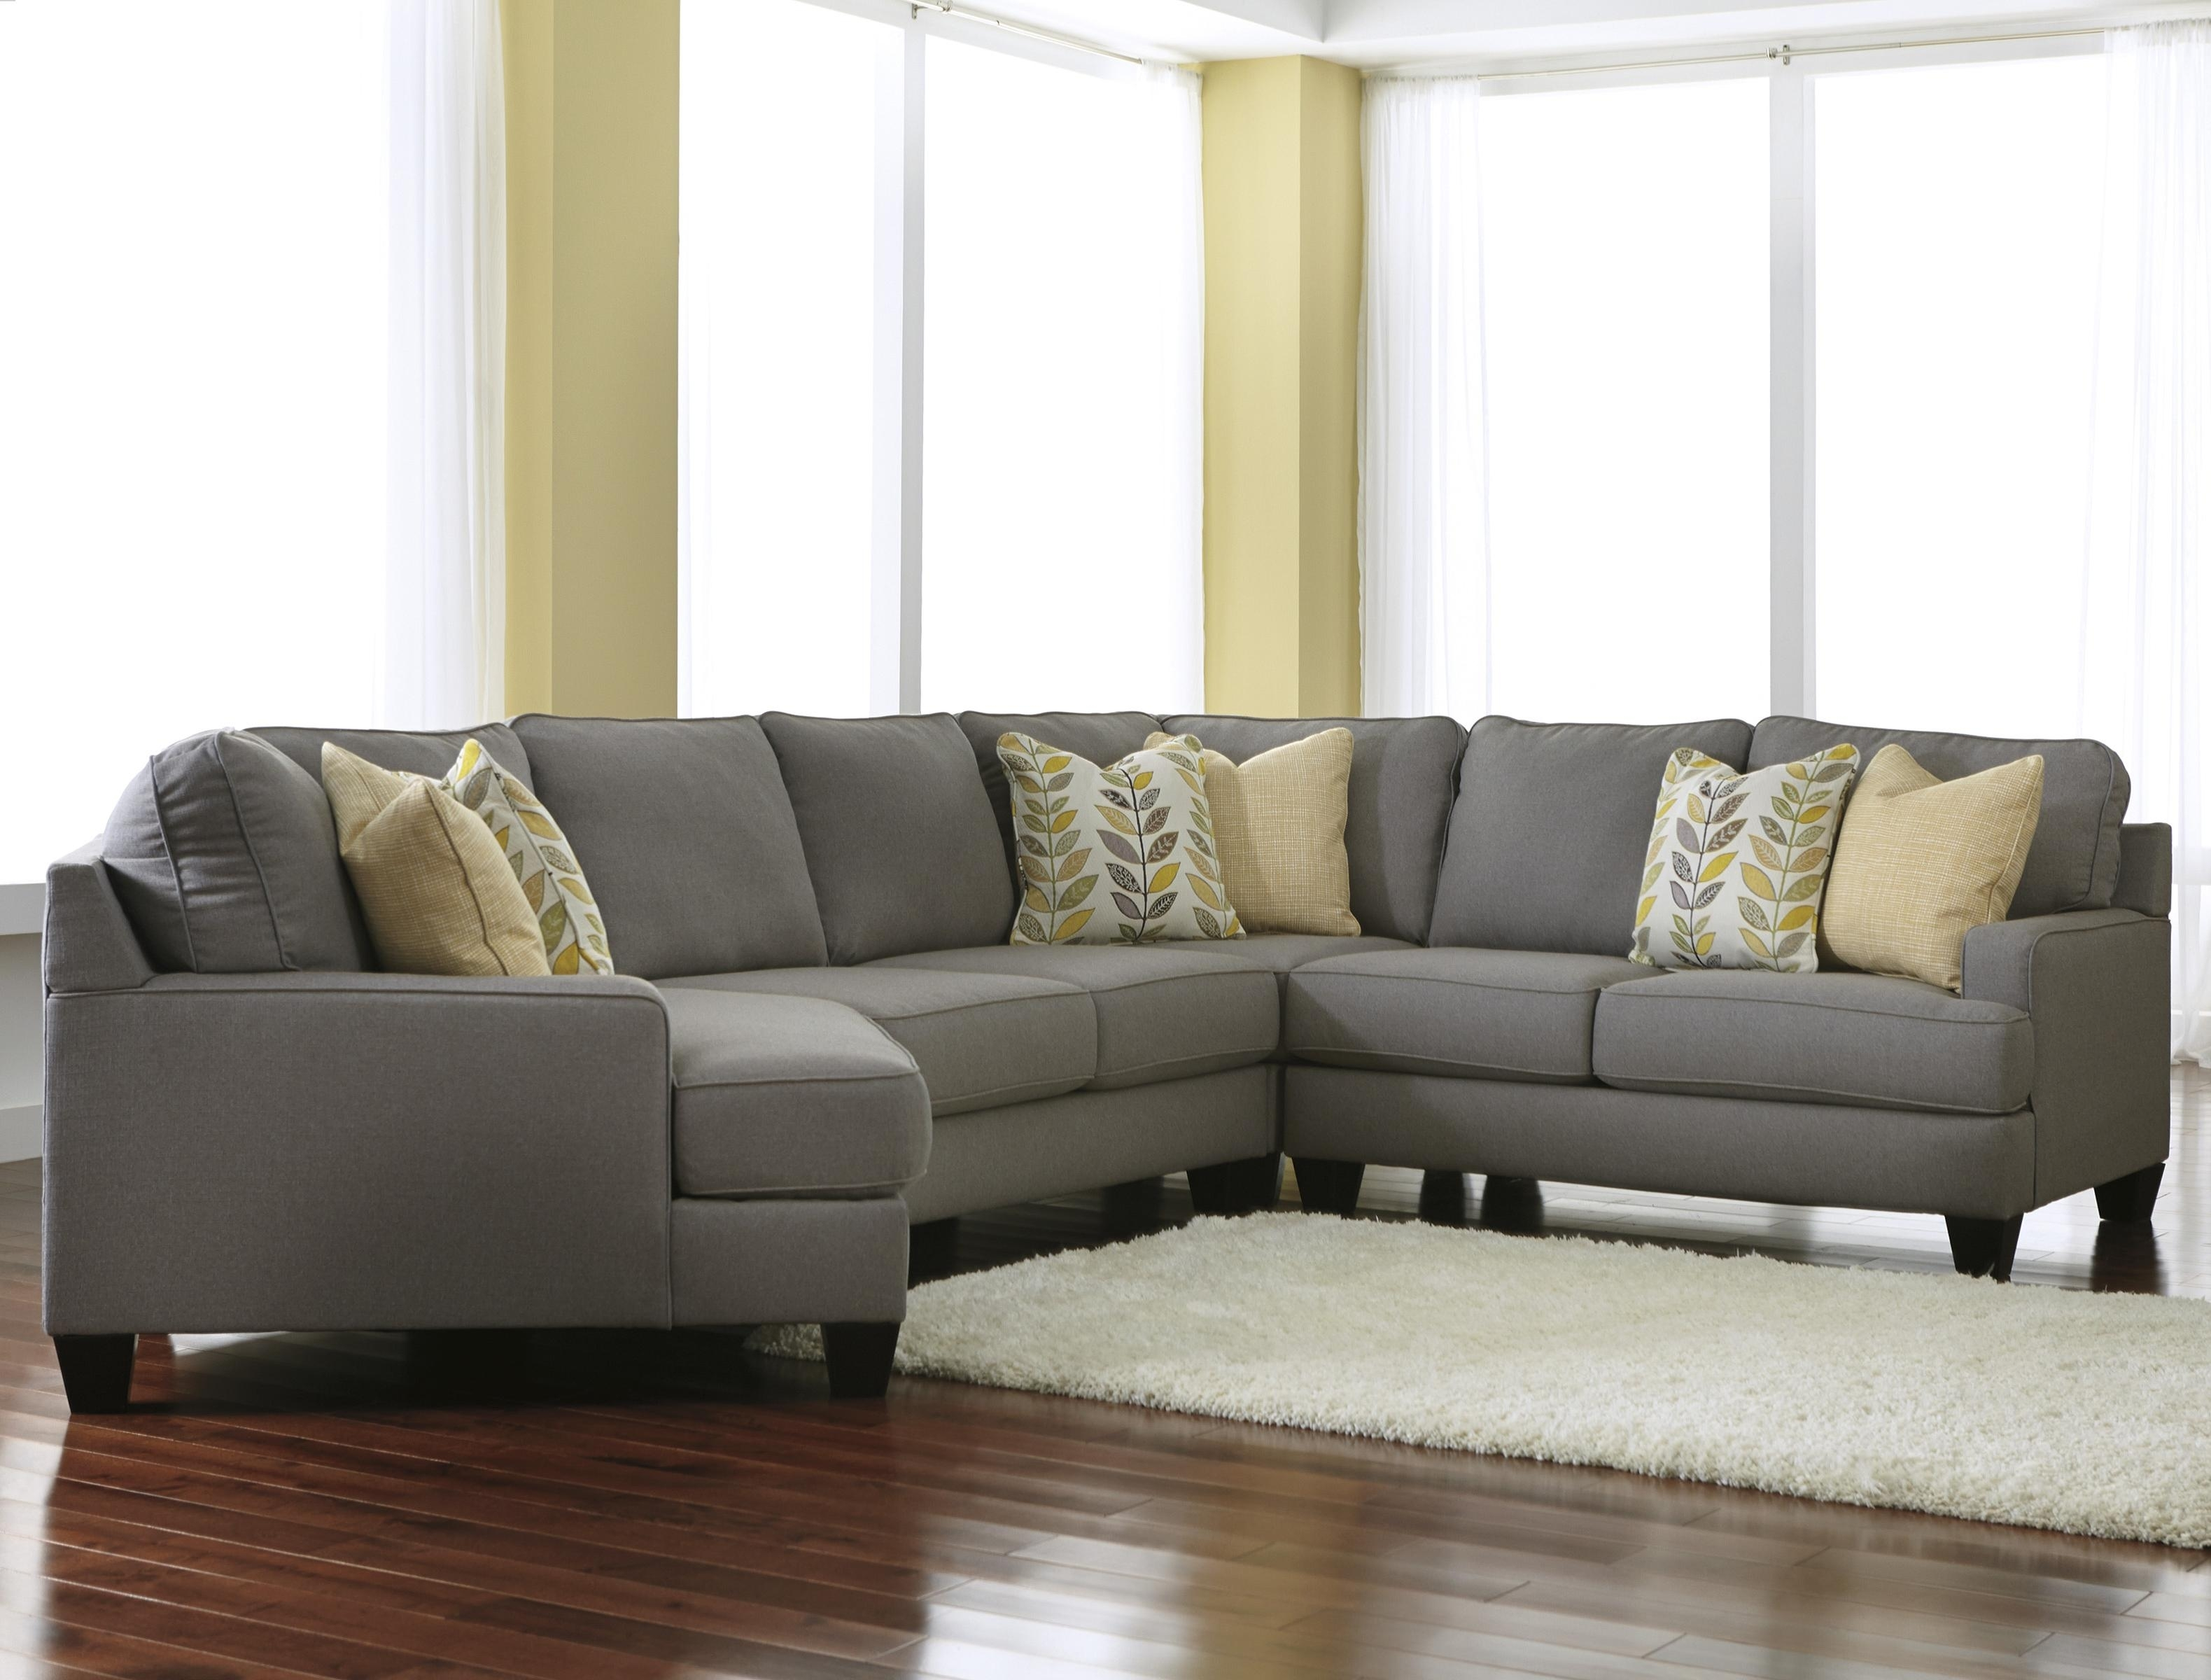 Signature Designashley Chamberly – Alloy Modern 4 Piece Pertaining To Norfolk Grey 3 Piece Sectionals With Laf Chaise (View 25 of 25)